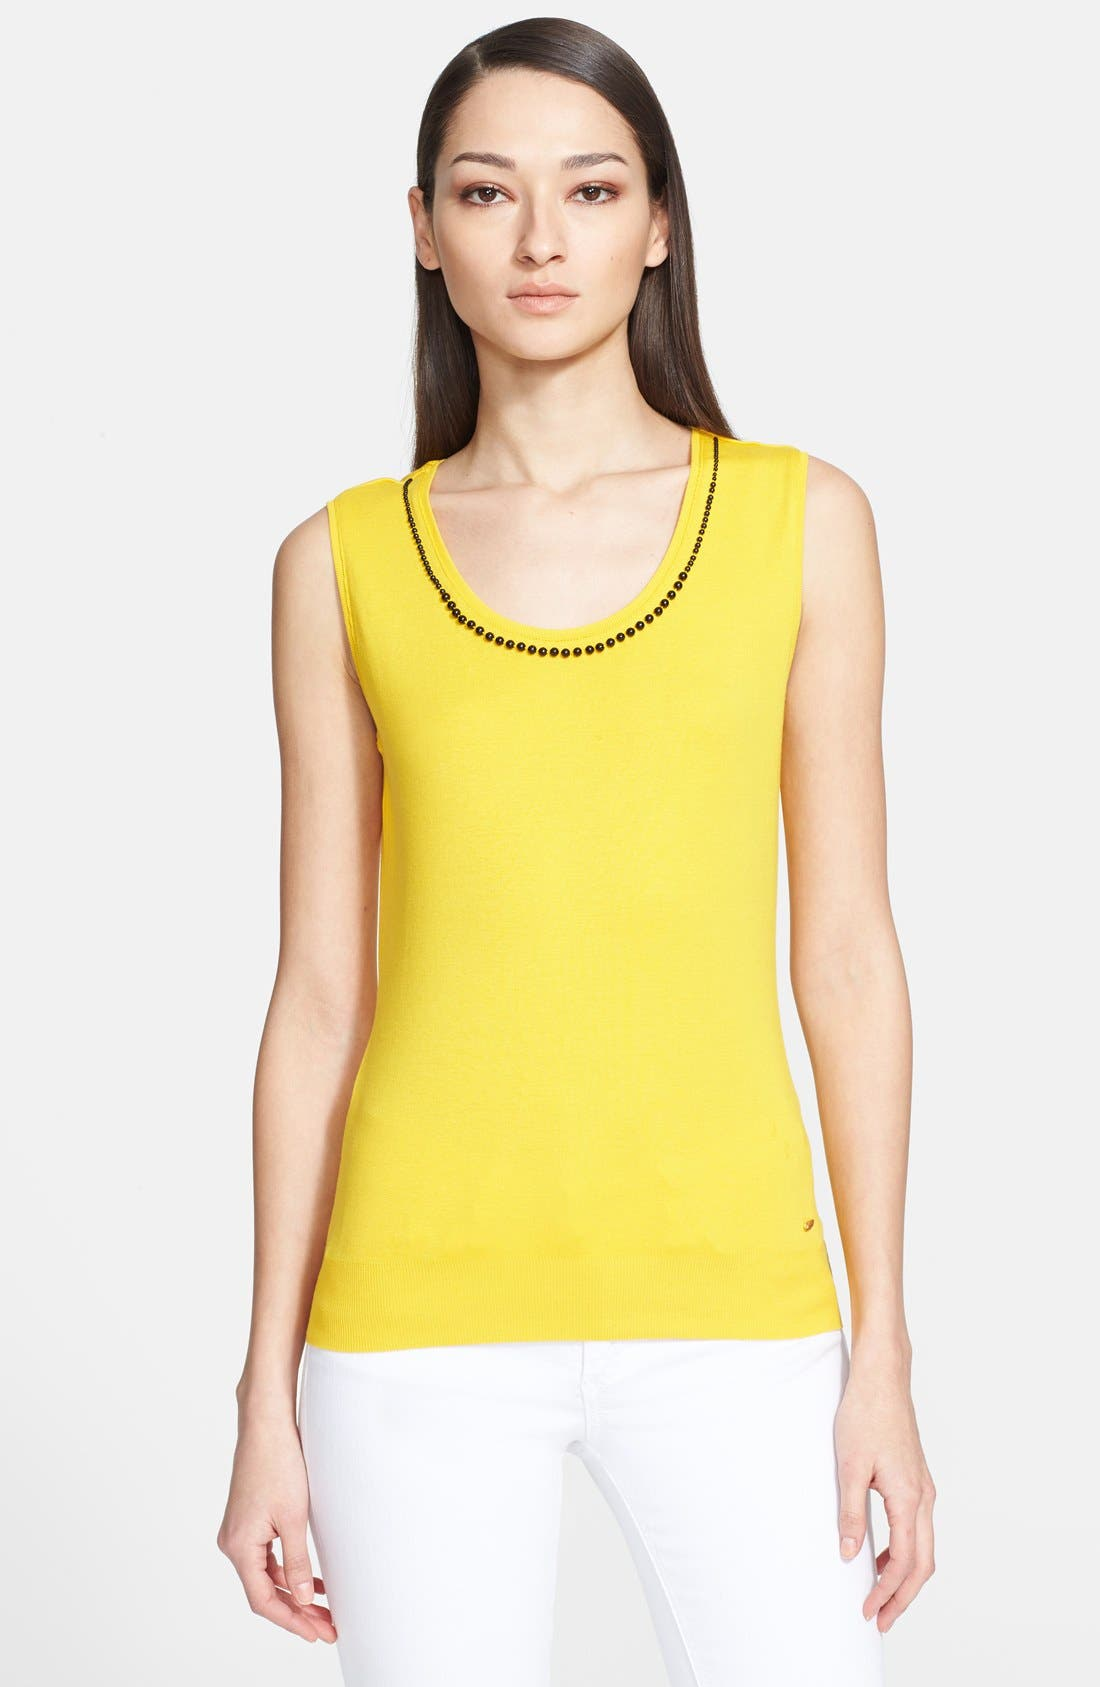 Alternate Image 1 Selected - ESCADA 'Eglal' Beaded Neck Knit Tank